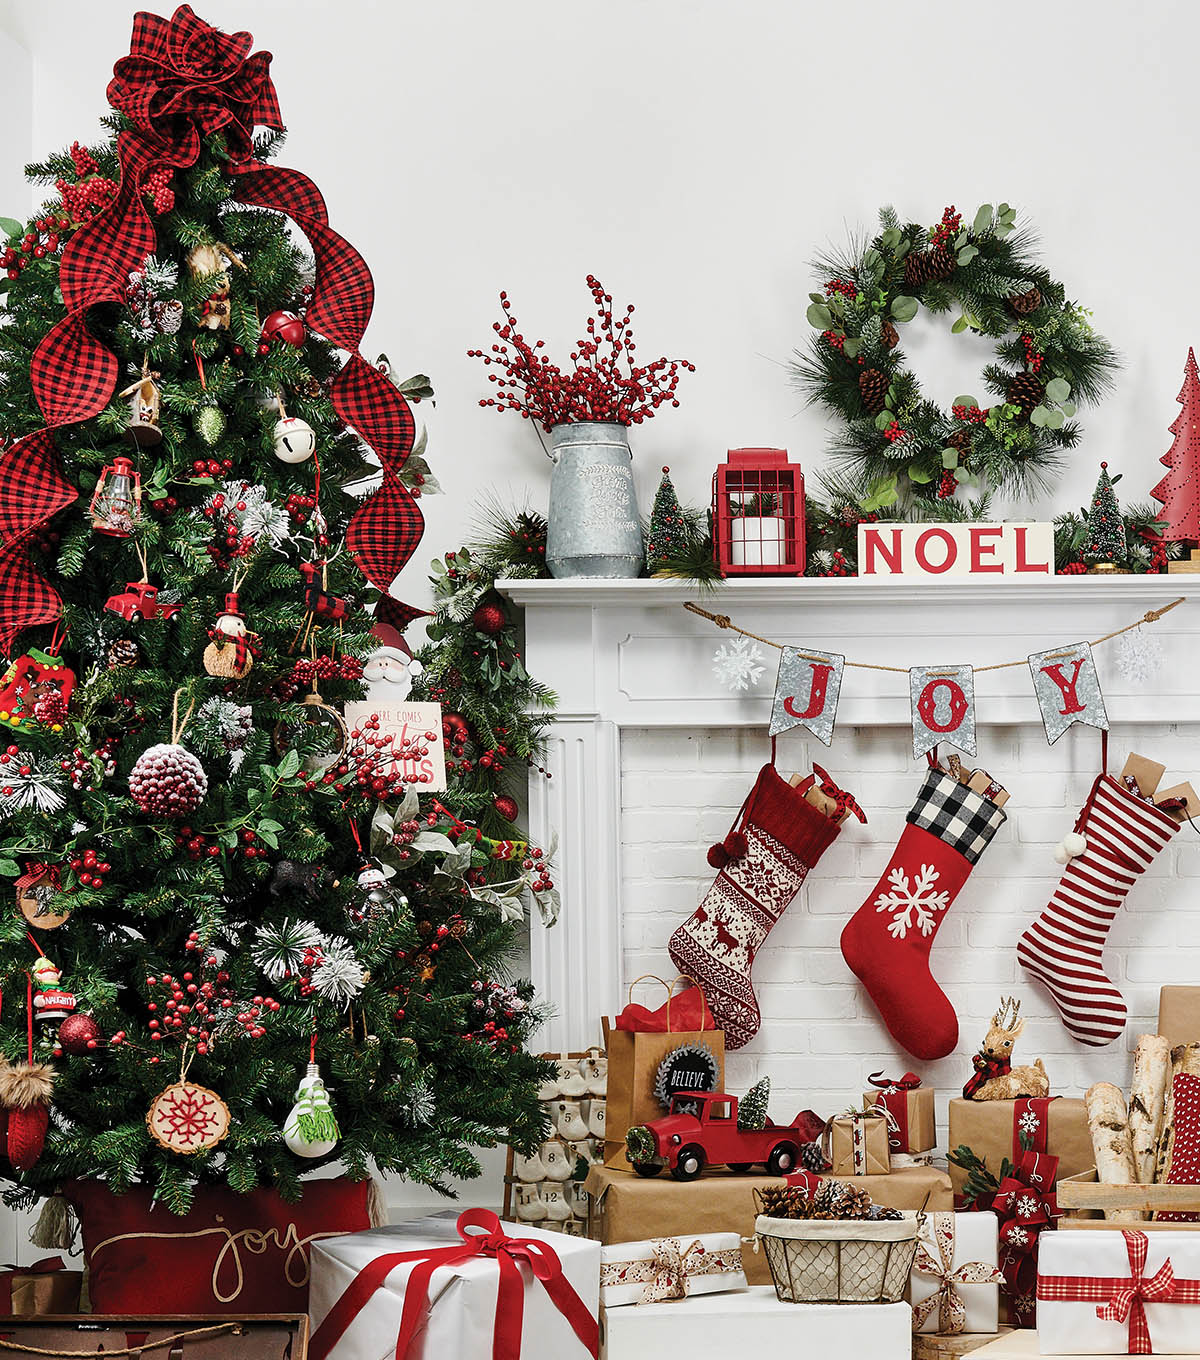 How To Style For Christmas | JOANN